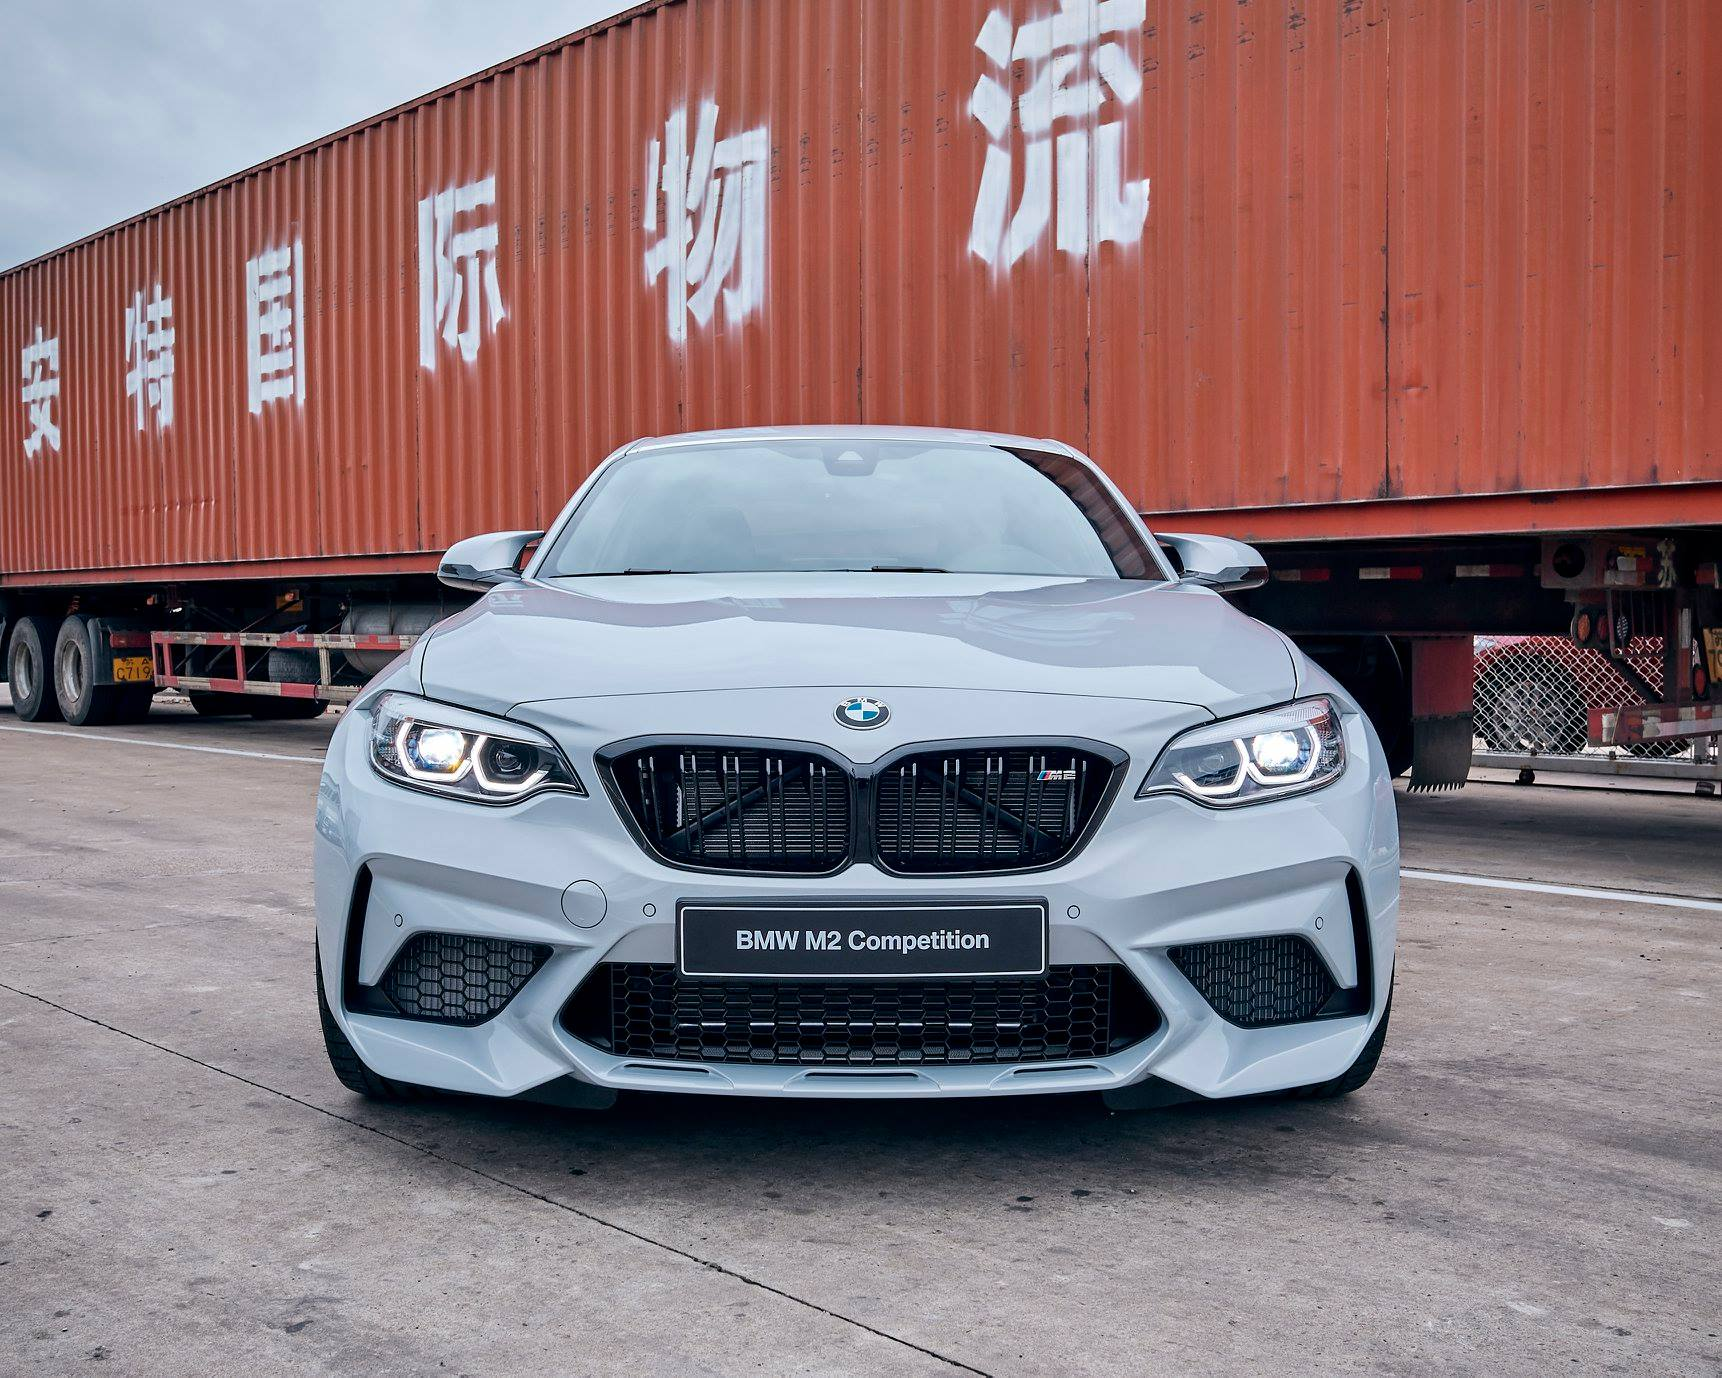 BMW M2 Competition: New Photos Before Premiere In Beijing